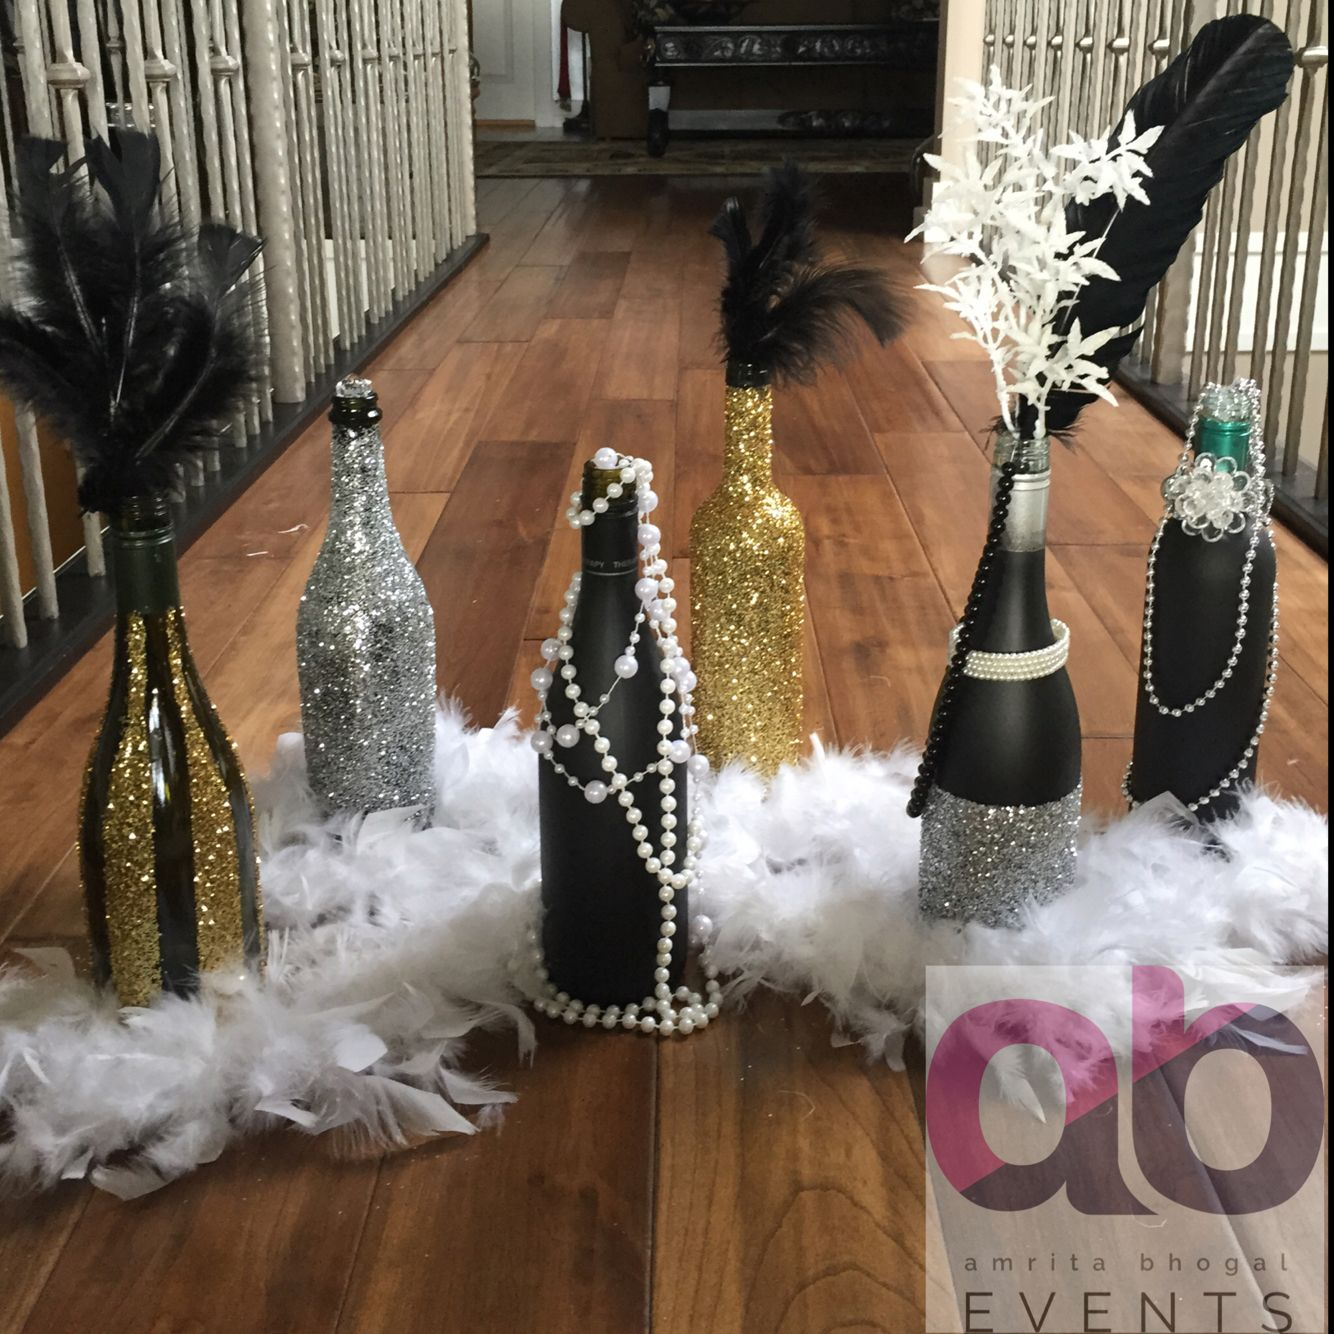 A Great Gatsby Theme Decor Sparkles Bottles Pearls